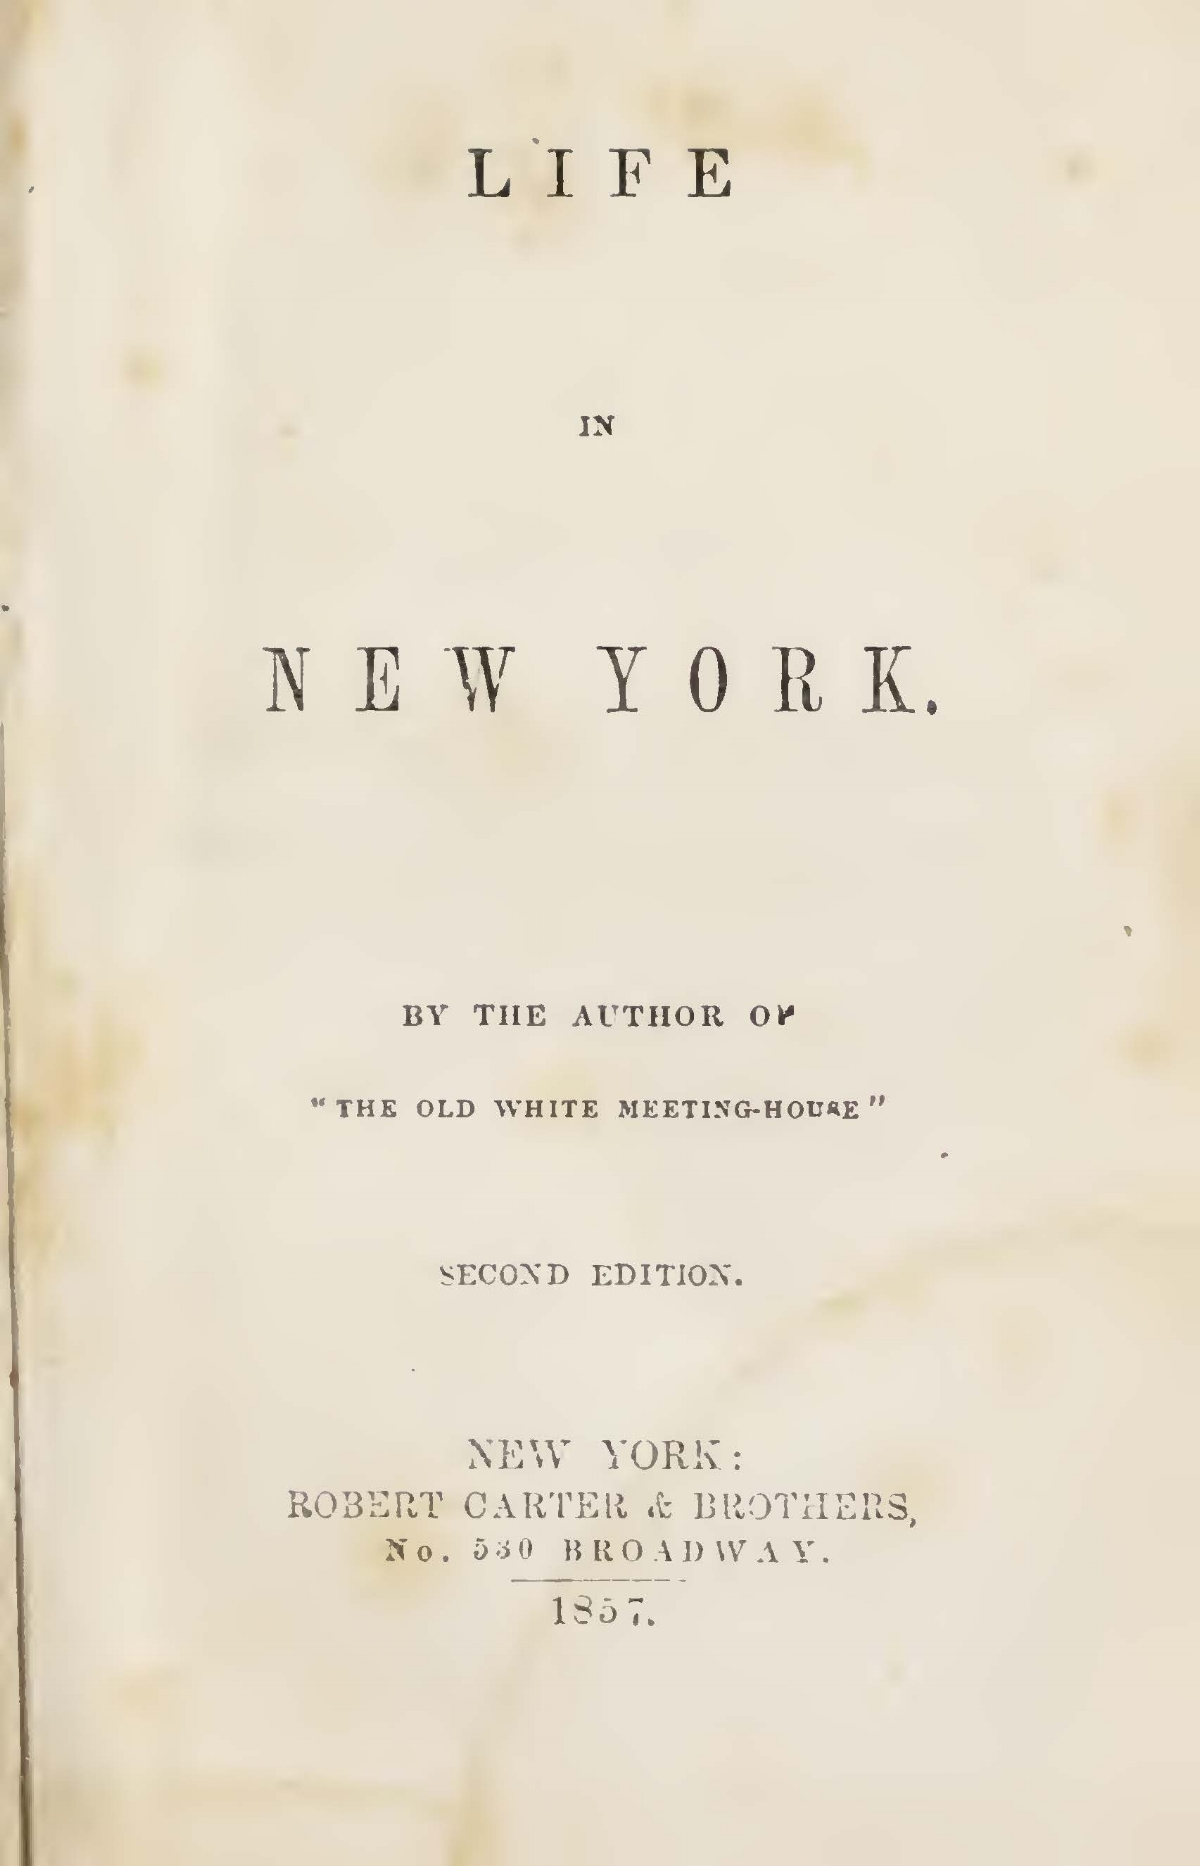 Prime, Samuel Irenaeus, Life in New York Title Page.jpg